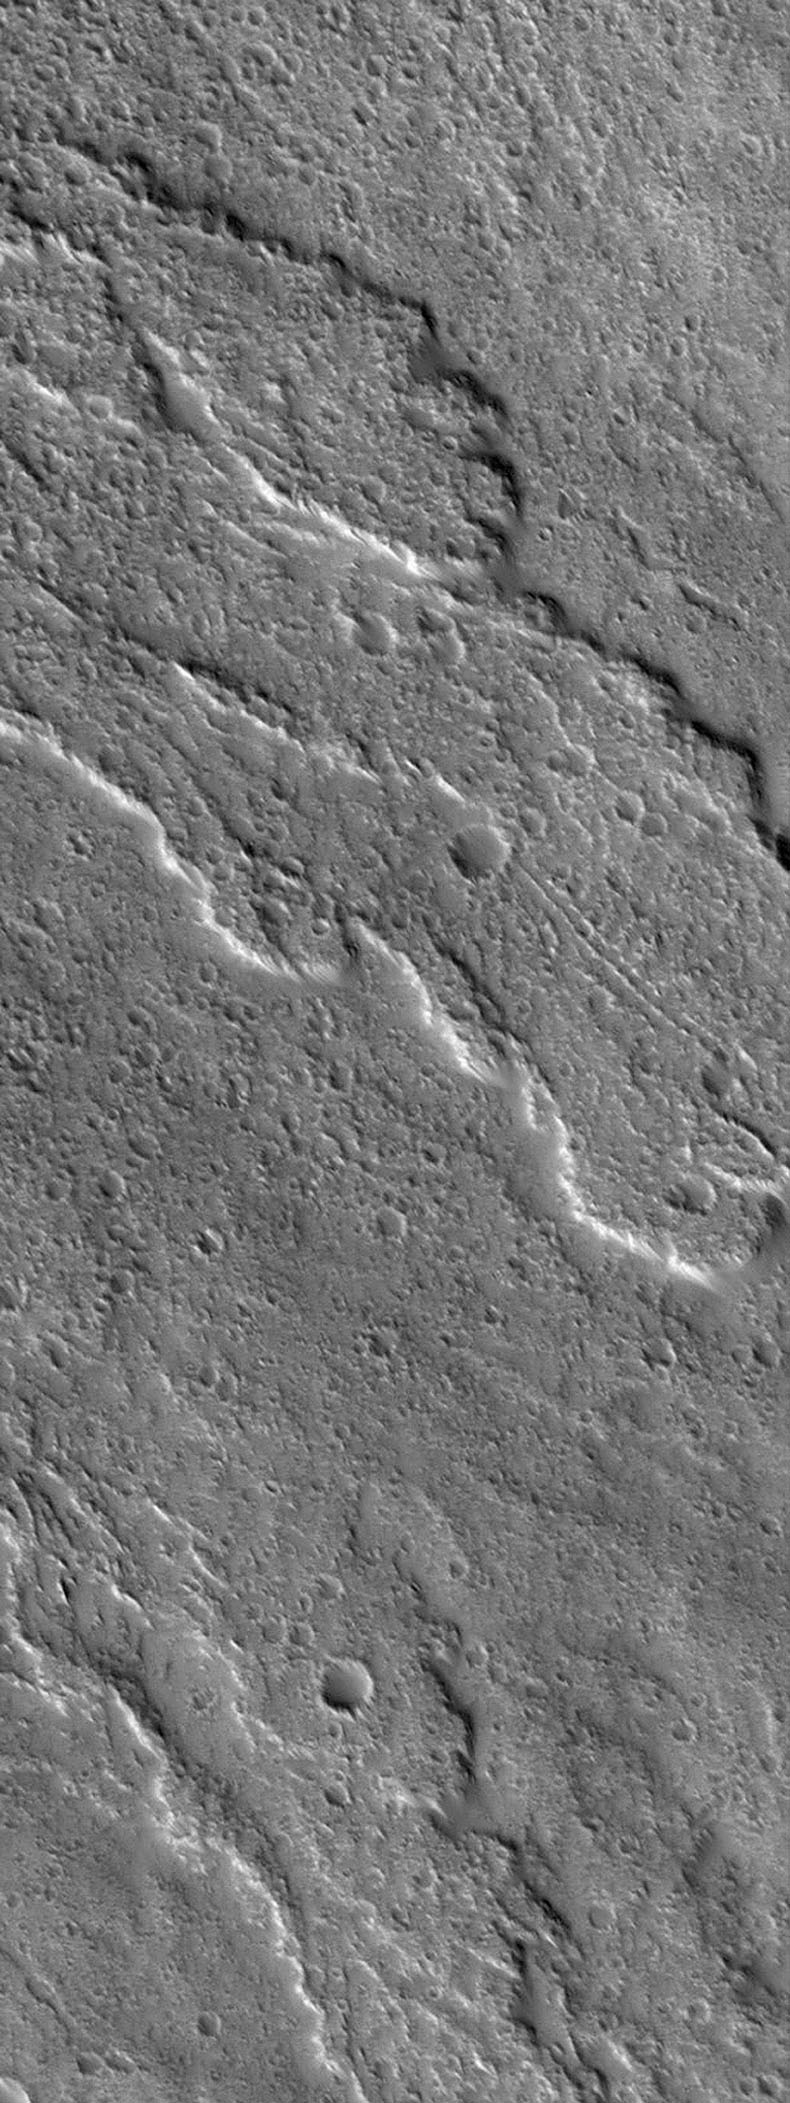 NASA's Mars Global Surveyor shows heavily-cratered lava flows on the slopes of the martian volcano, Ascraeus Mons on Mars. The mountain is a classic shield volcano, similar in many respects to the volcanoes of Hawaii.